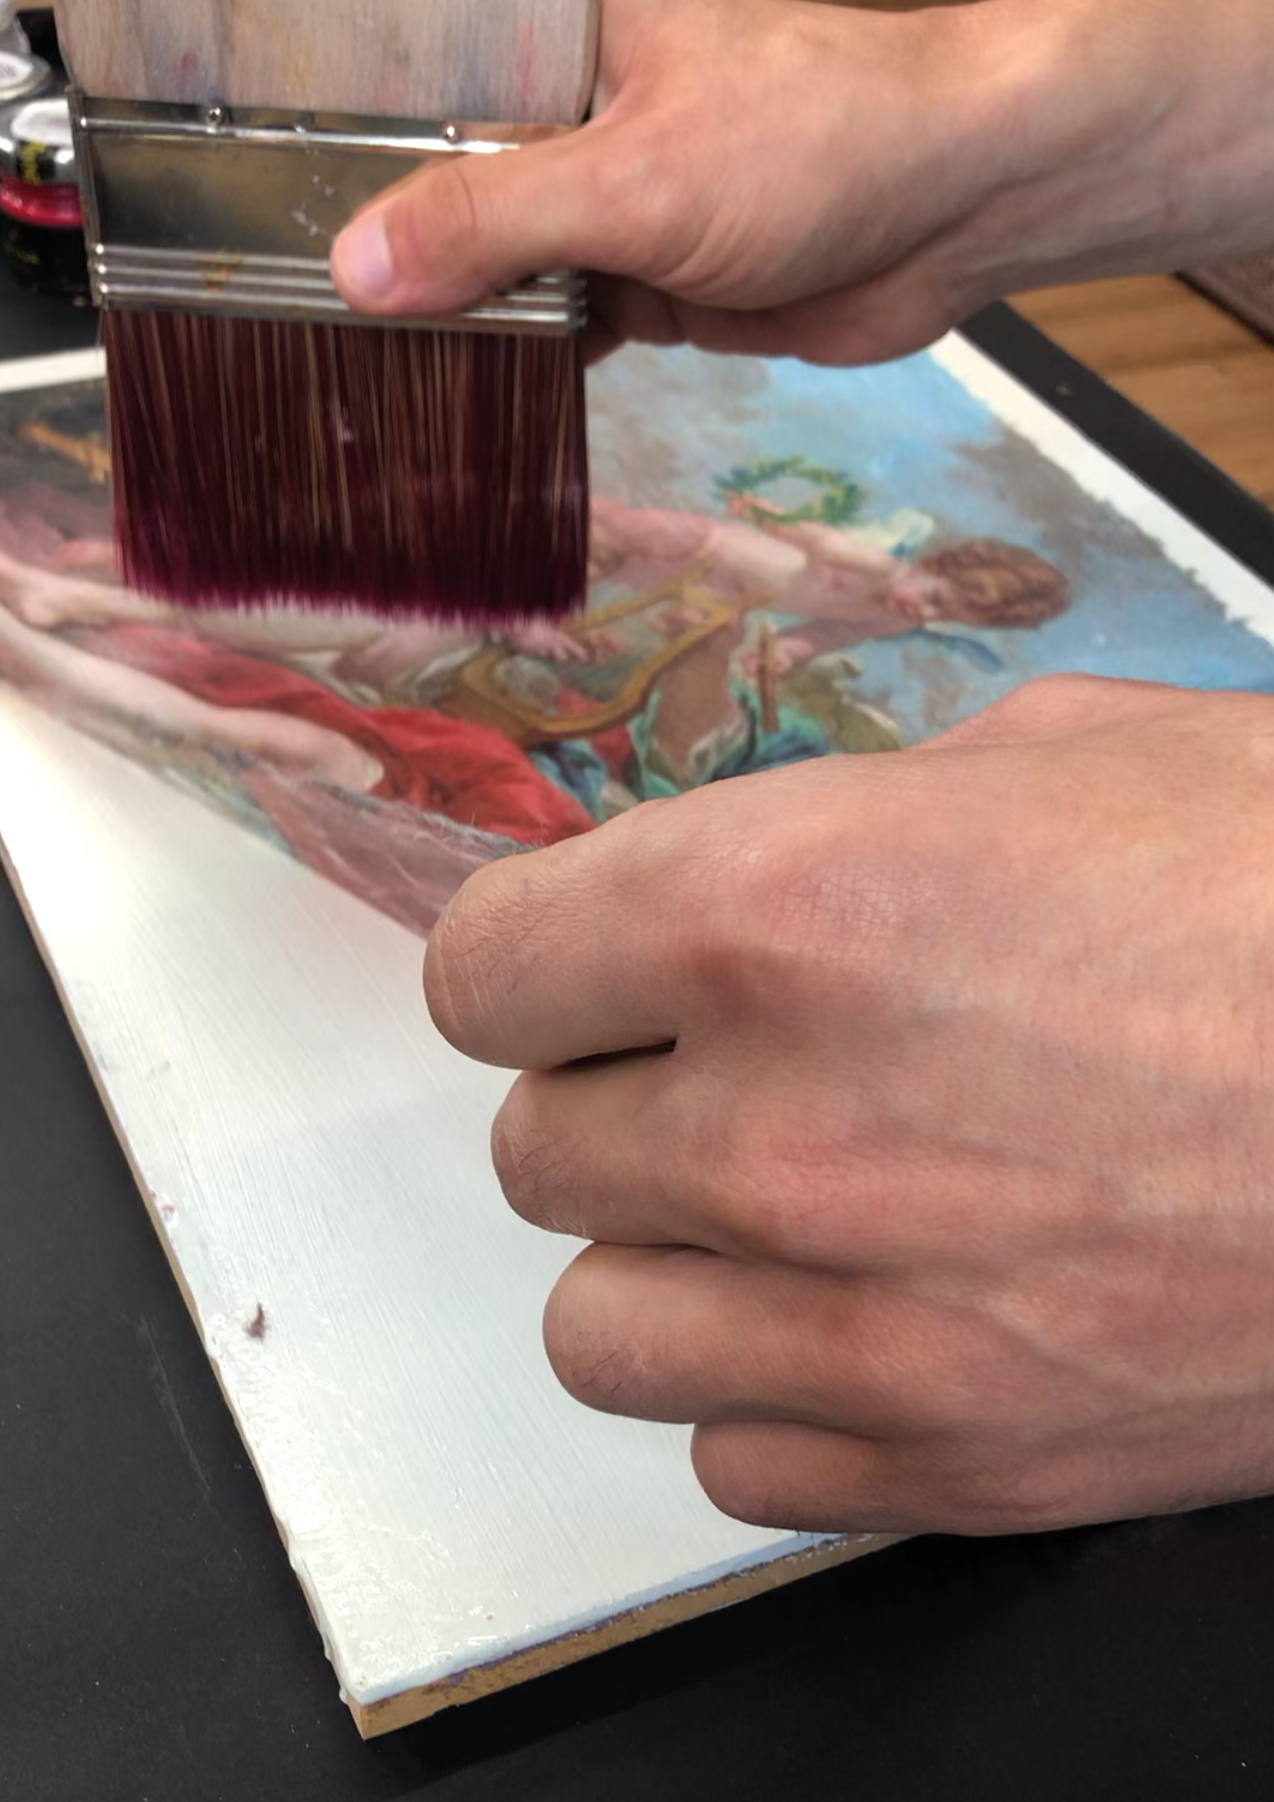 Posh cgal decoupage being applied on a piece of MDF wood